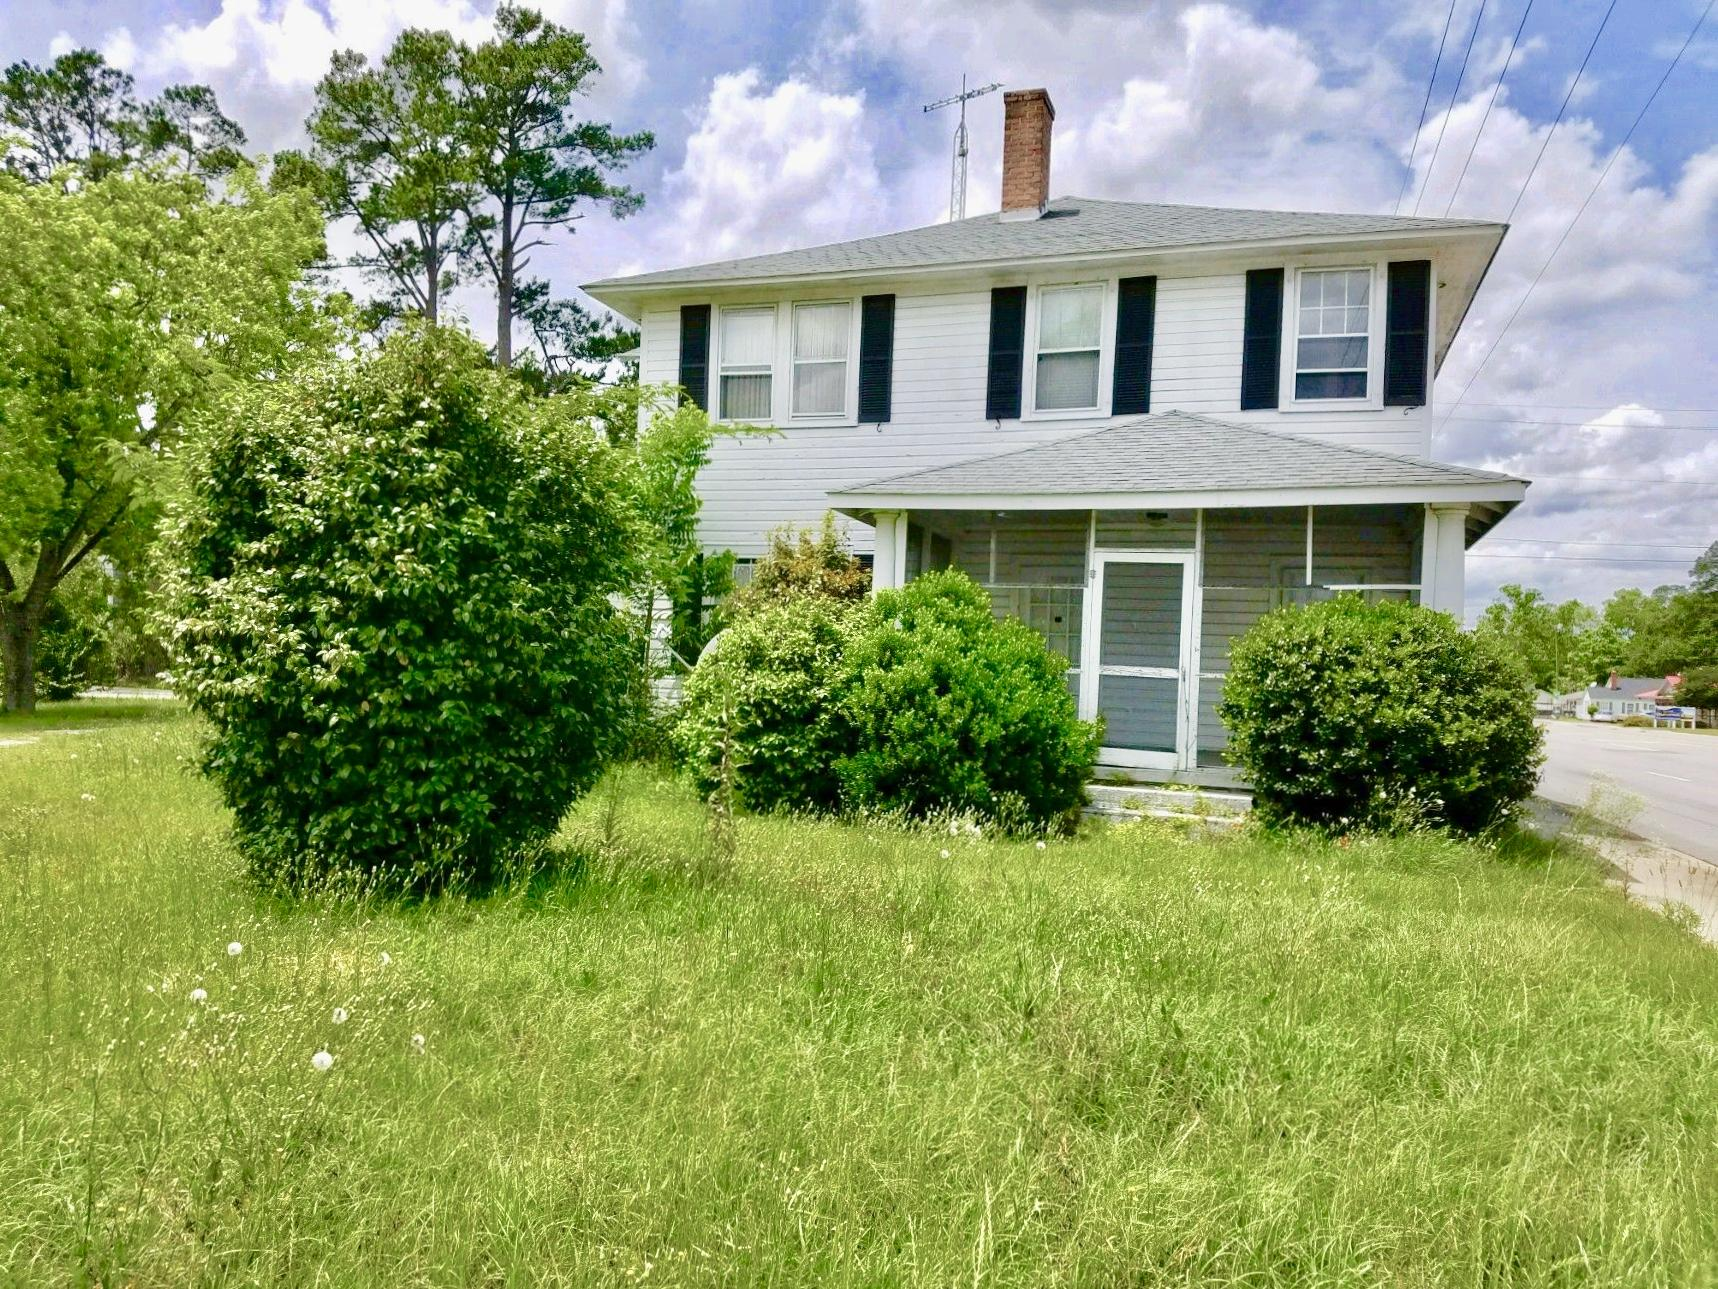 Photo of 5539 County Rd S-18-200, St George, SC 29477